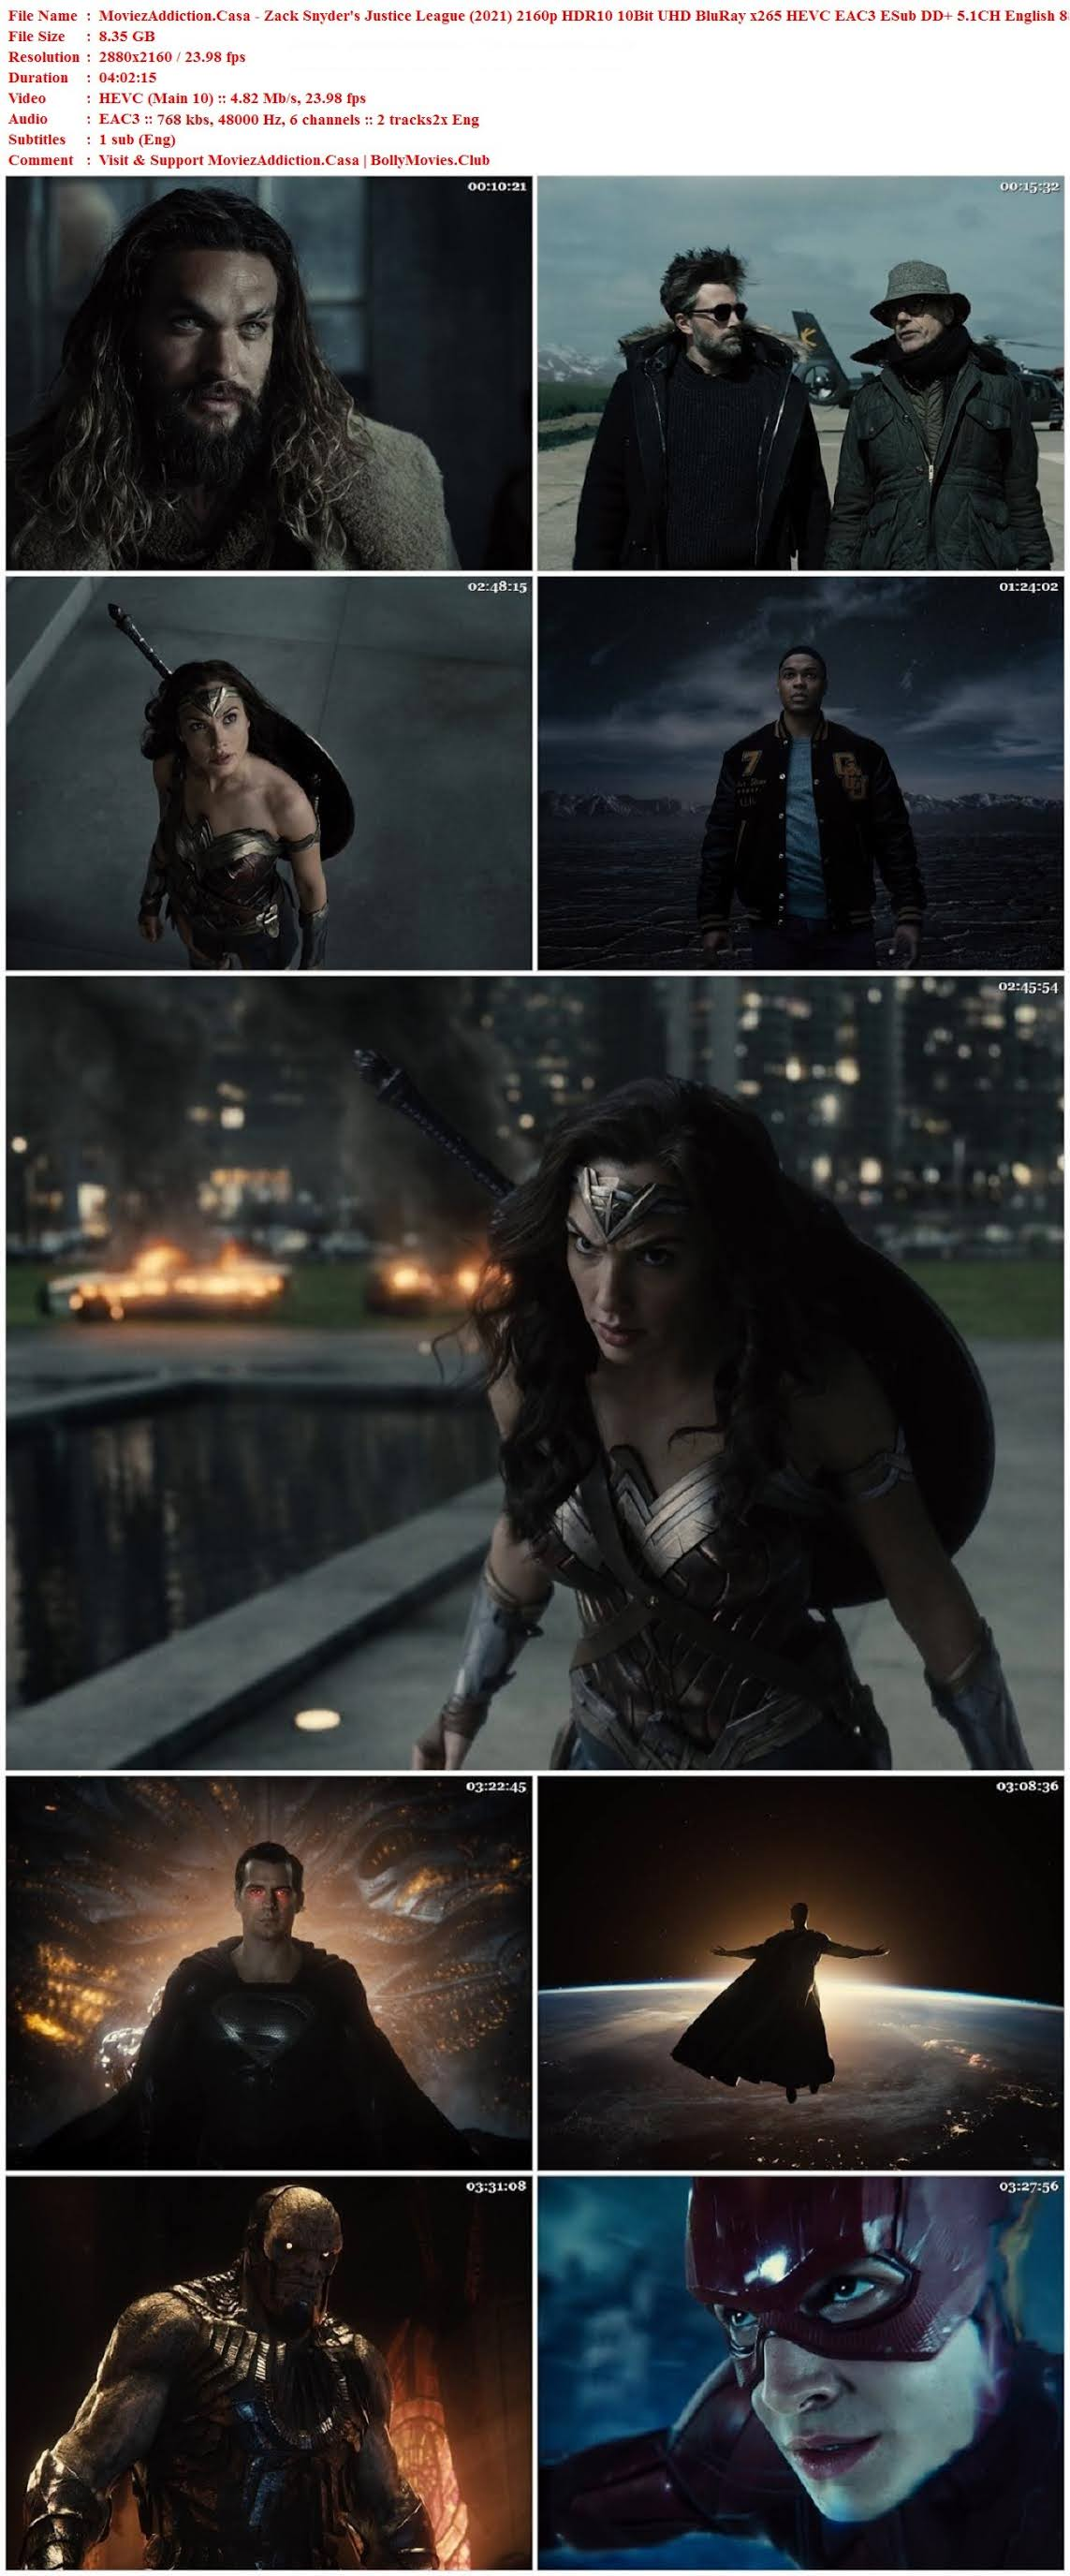 Download Zack Snyder's Justice League